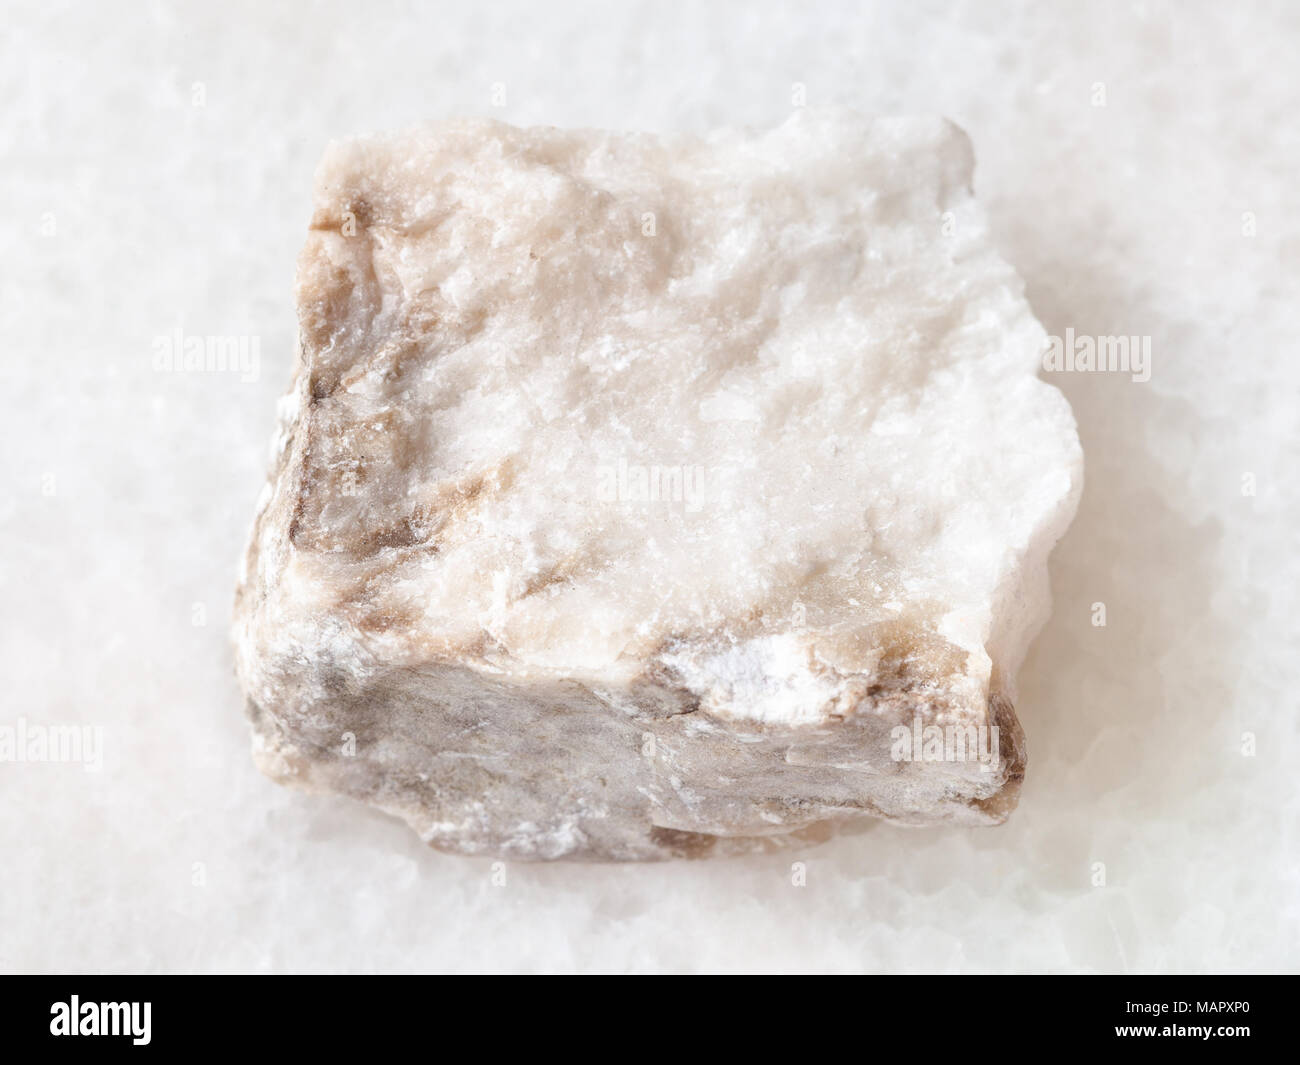 macro shooting of natural mineral rock specimen - rough Anhydrite stone on white marble background Stock Photo